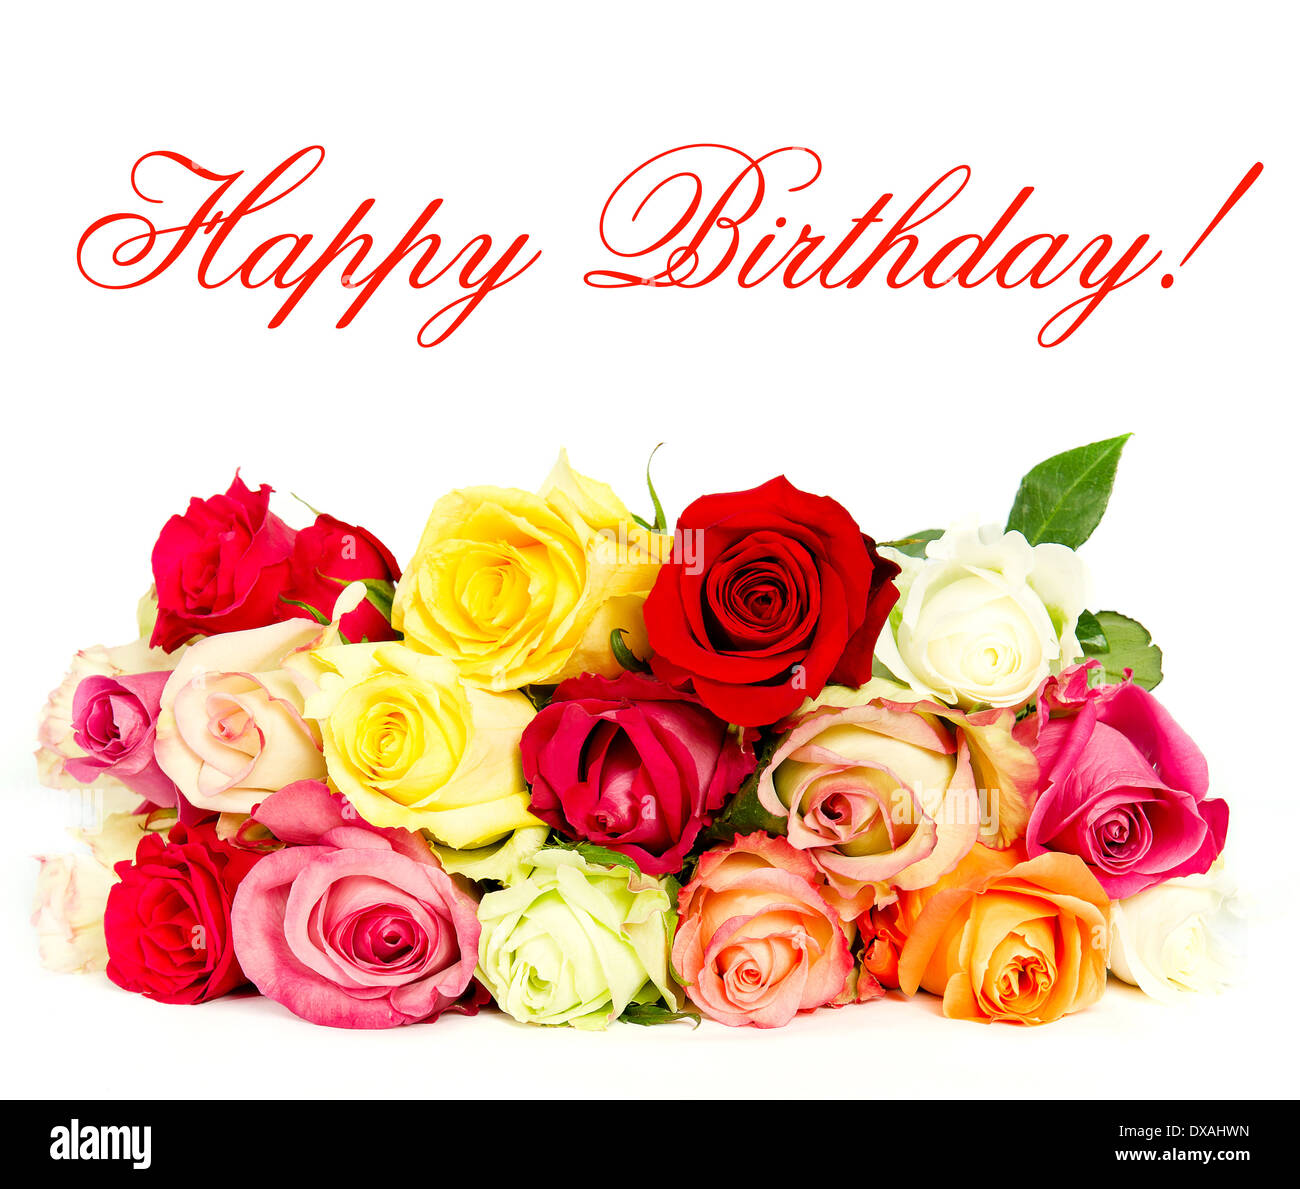 Happy Birthday Colorful Roses Beautiful Flower Bouquet Card Stock